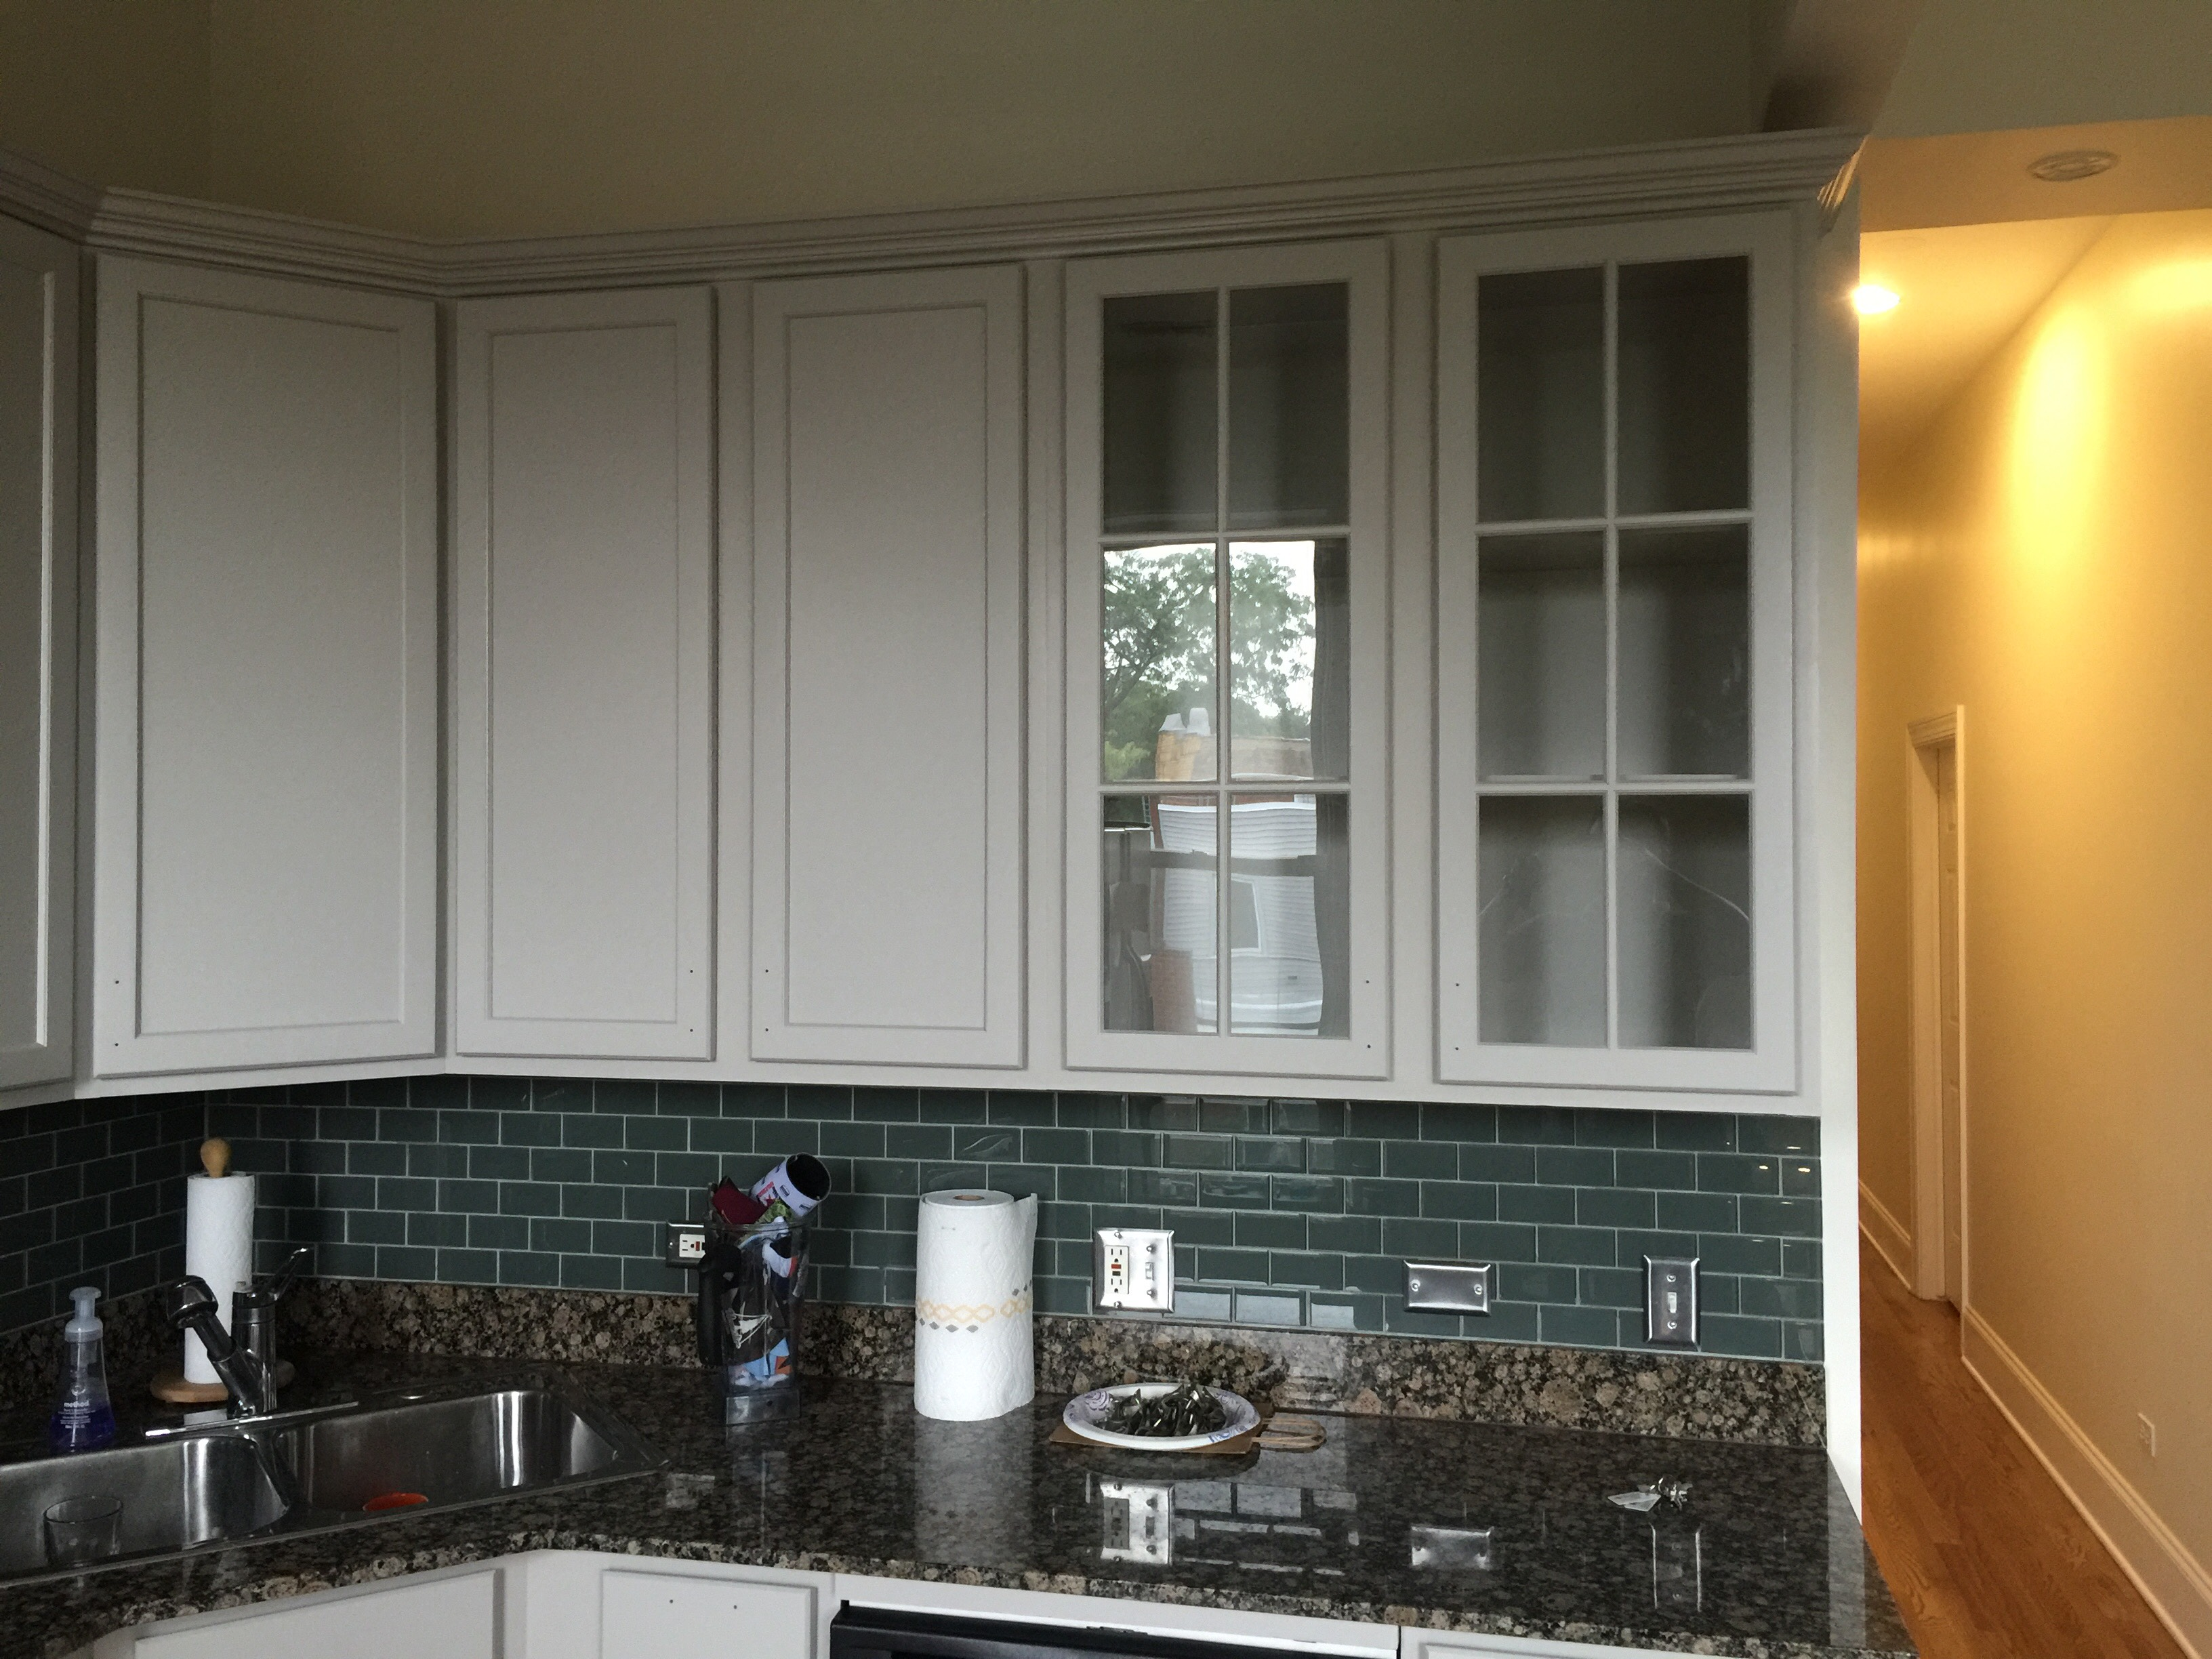 Author proplanet-northPosted on May 16, 2017 Categories KITCHEN CABINET REFINISHING